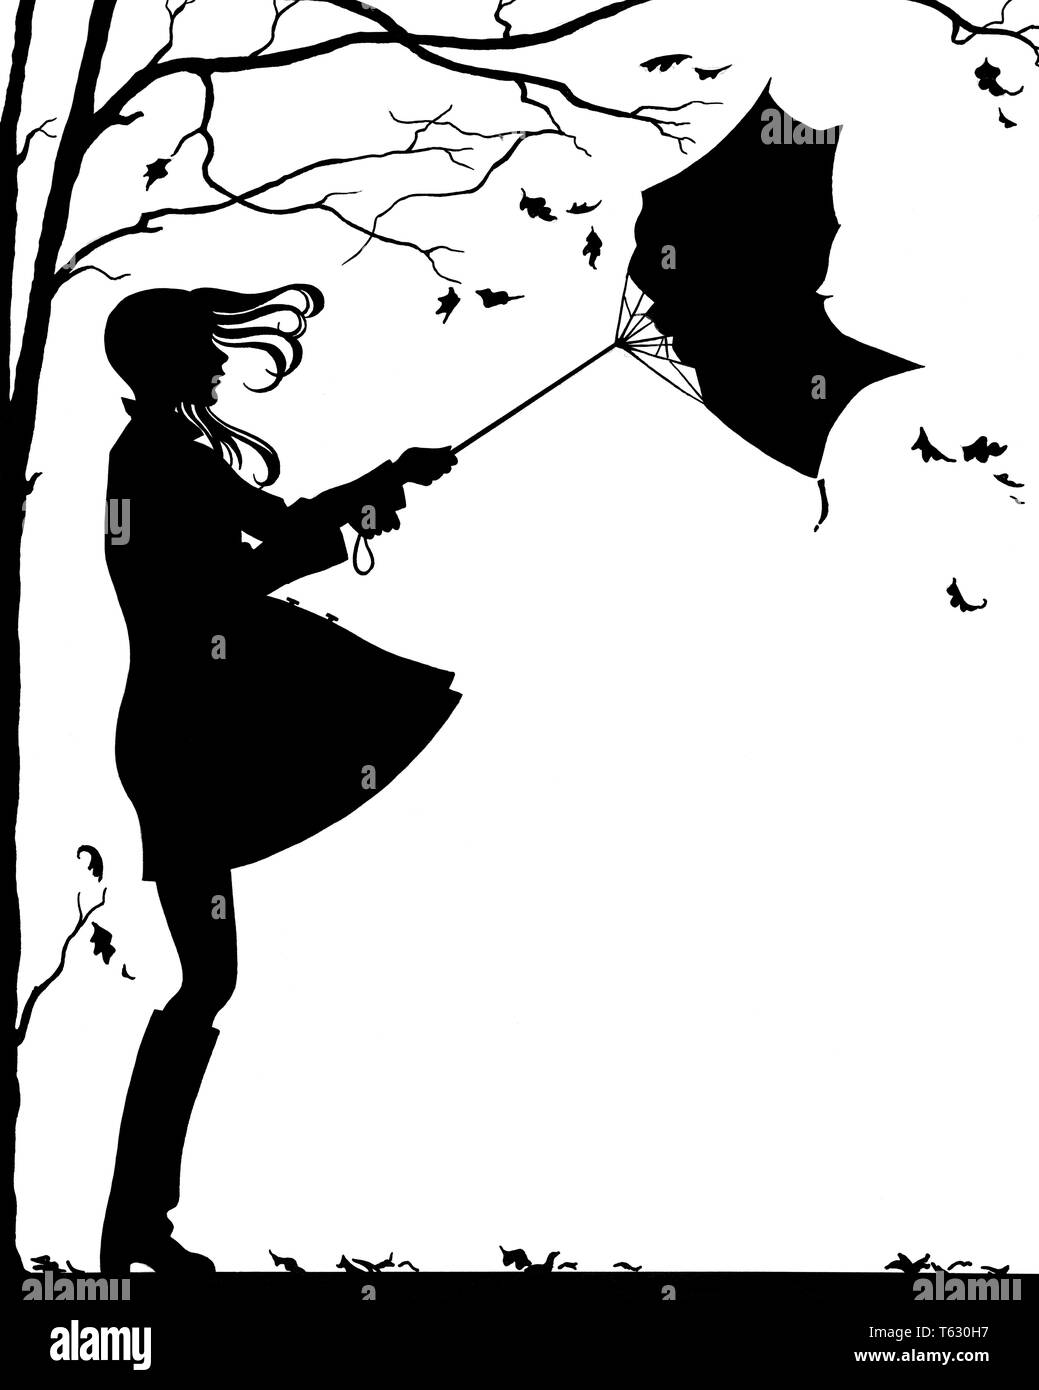 1960s 1970s TEEN GIRL WITH FLYING HAIR UMBRELLA TURNED INSIDE OUT RAINY VERY WINDY AUTUMN DAY SYMBOLIC SILHOUETTE ILLUSTRATION - s17621 HAR001 HARS BALANCE SAFETY ABSTRACT LIFESTYLE FEMALES HEALTHINESS HOME LIFE COPY SPACE FULL-LENGTH LADIES RAINY PERSONS RISK TEENAGE GIRL RAINING SYMBOLS SPIRITUALITY STORMY B&W SADNESS VERY ADVENTURE PROTECTION STRENGTH SILHOUETTED EXCITEMENT POWERFUL DIRECTION TURNED CONCEPT CONCEPTUAL ESCAPE STYLISH TEENAGED WINDY ANONYMOUS SYMBOLIC CONCEPTS INSIDE OUT YOUNG ADULT WOMAN BLACK AND WHITE HAR001 OLD FASHIONED REPRESENTATION WIND BLOWN - Stock Image